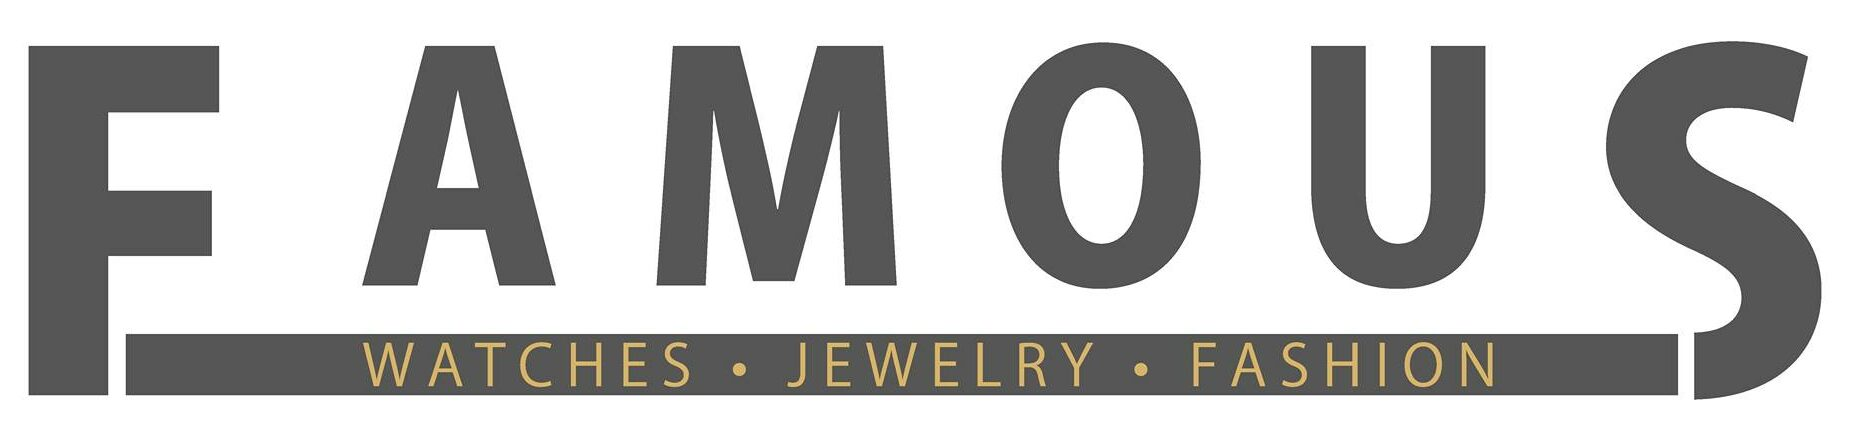 Famous Watches & Jewelry